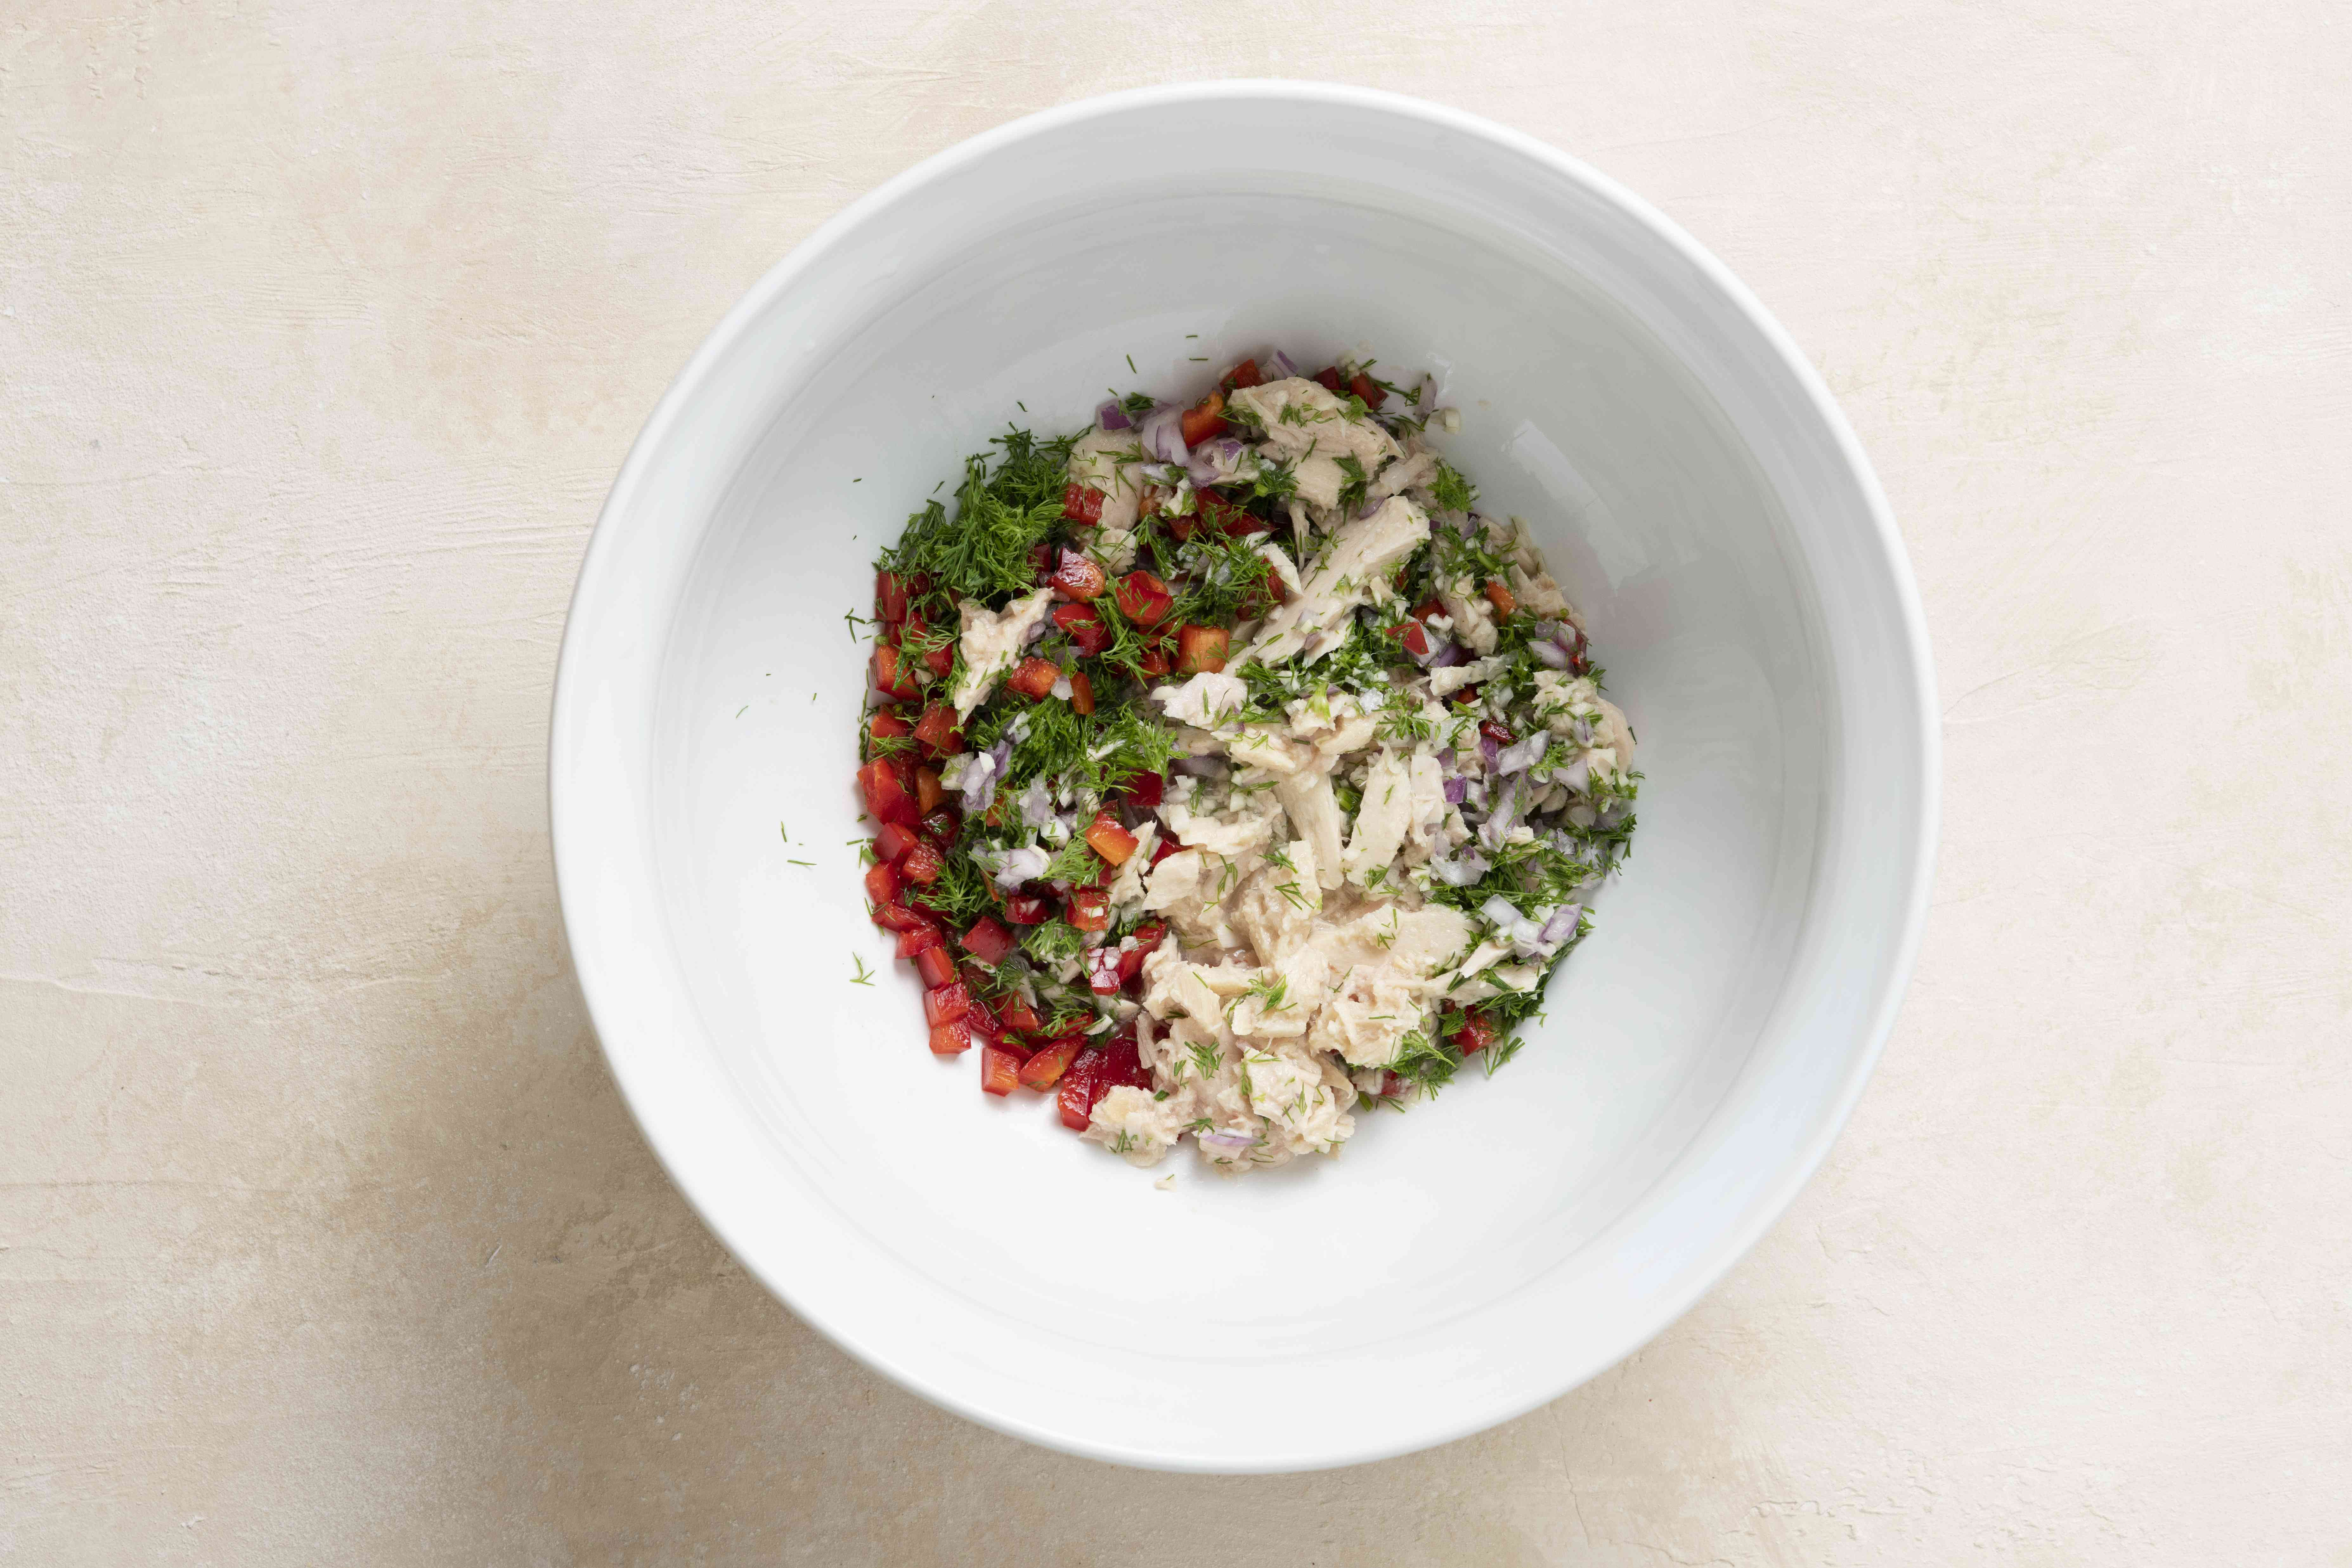 combine the tuna, finely chopped onion, minced garlic, bell pepper, dill, and lemon juice in a bowl